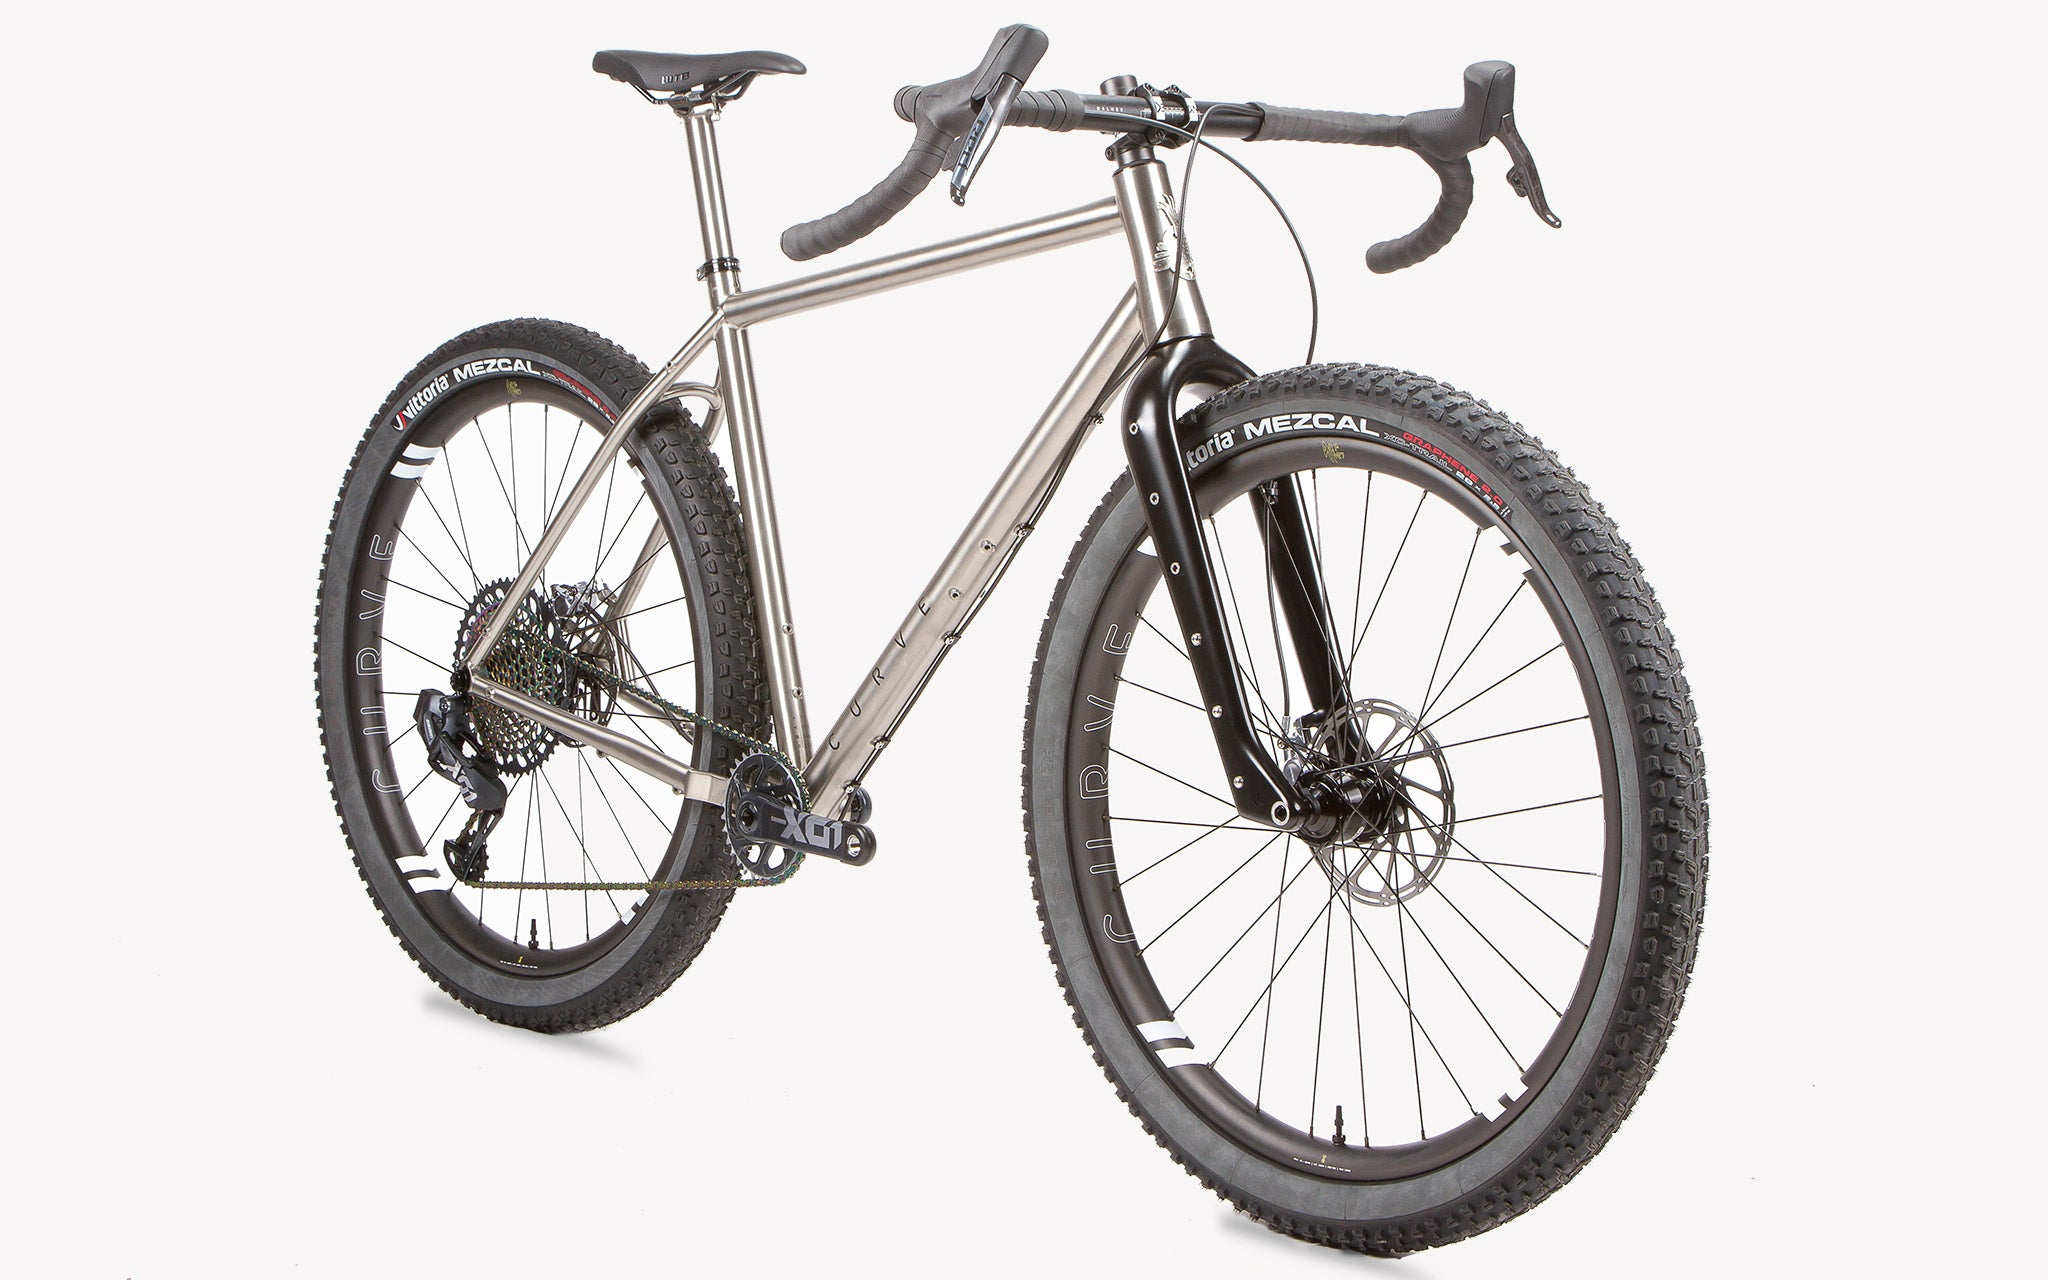 Titanium Gravel Bike